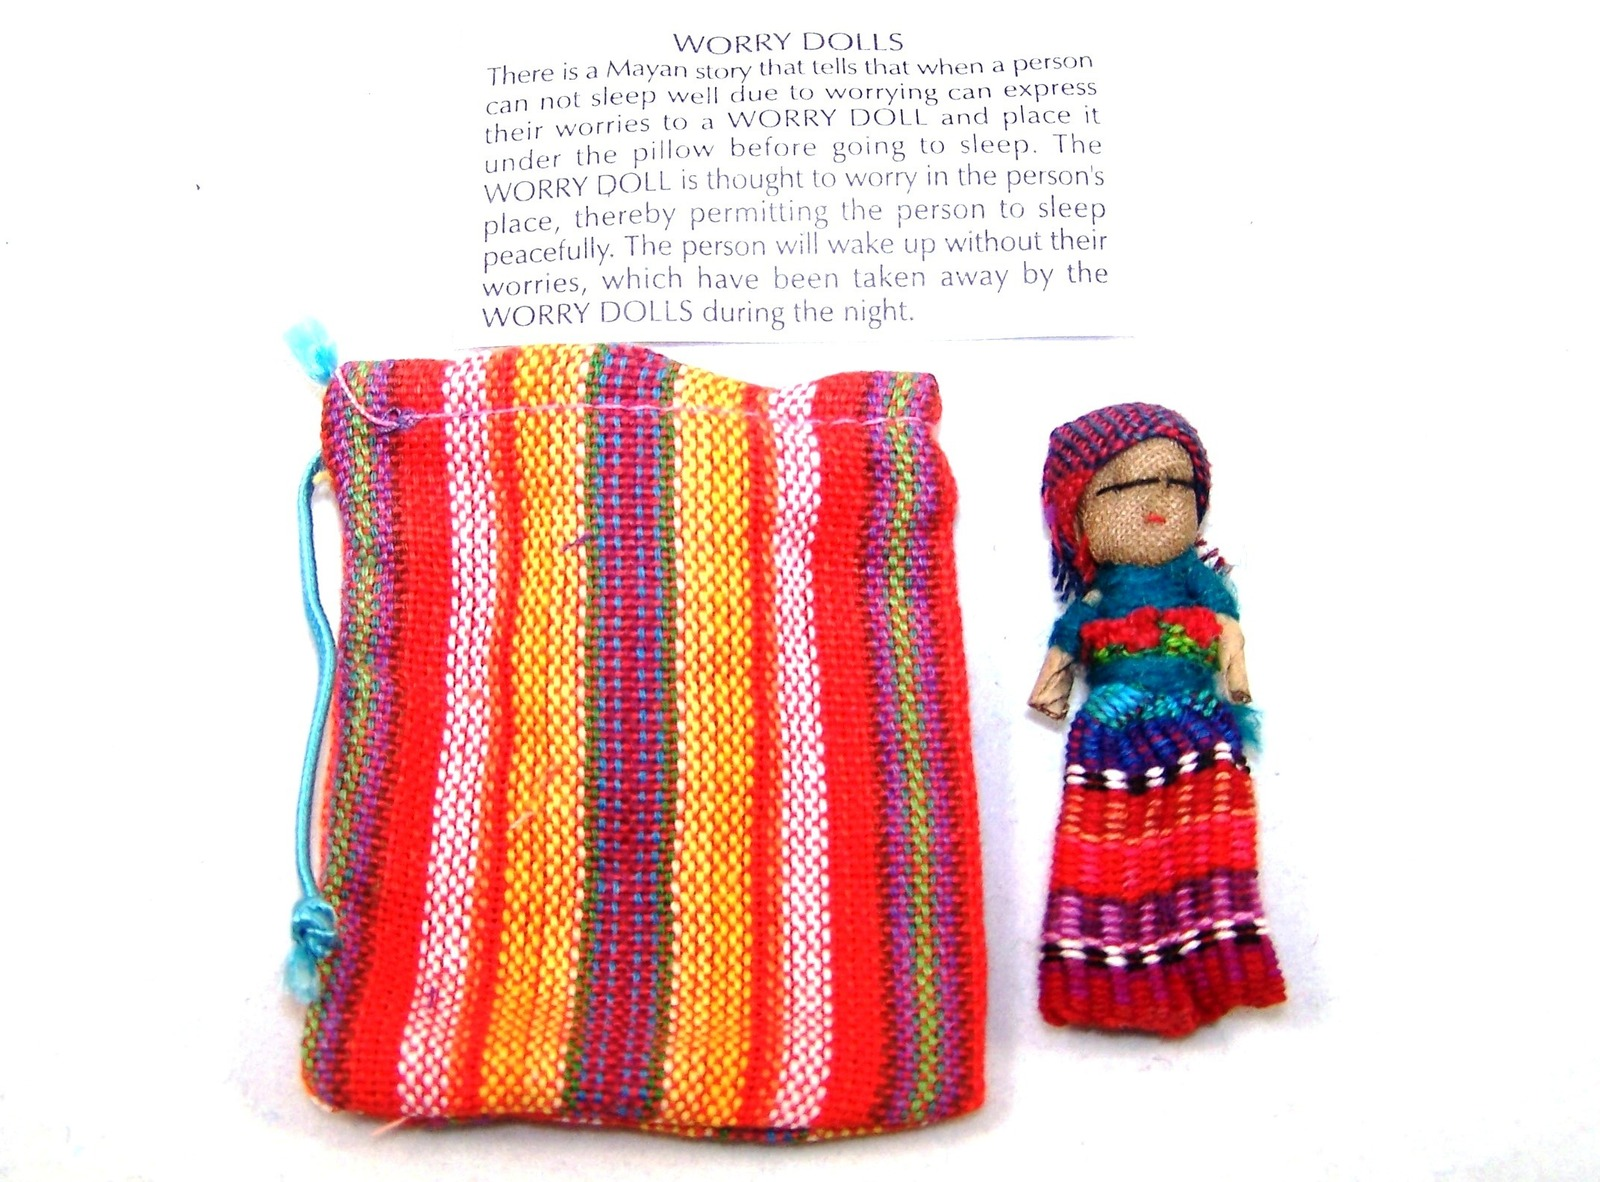 Mexitraders Single Worry Doll In A Textile Pouch